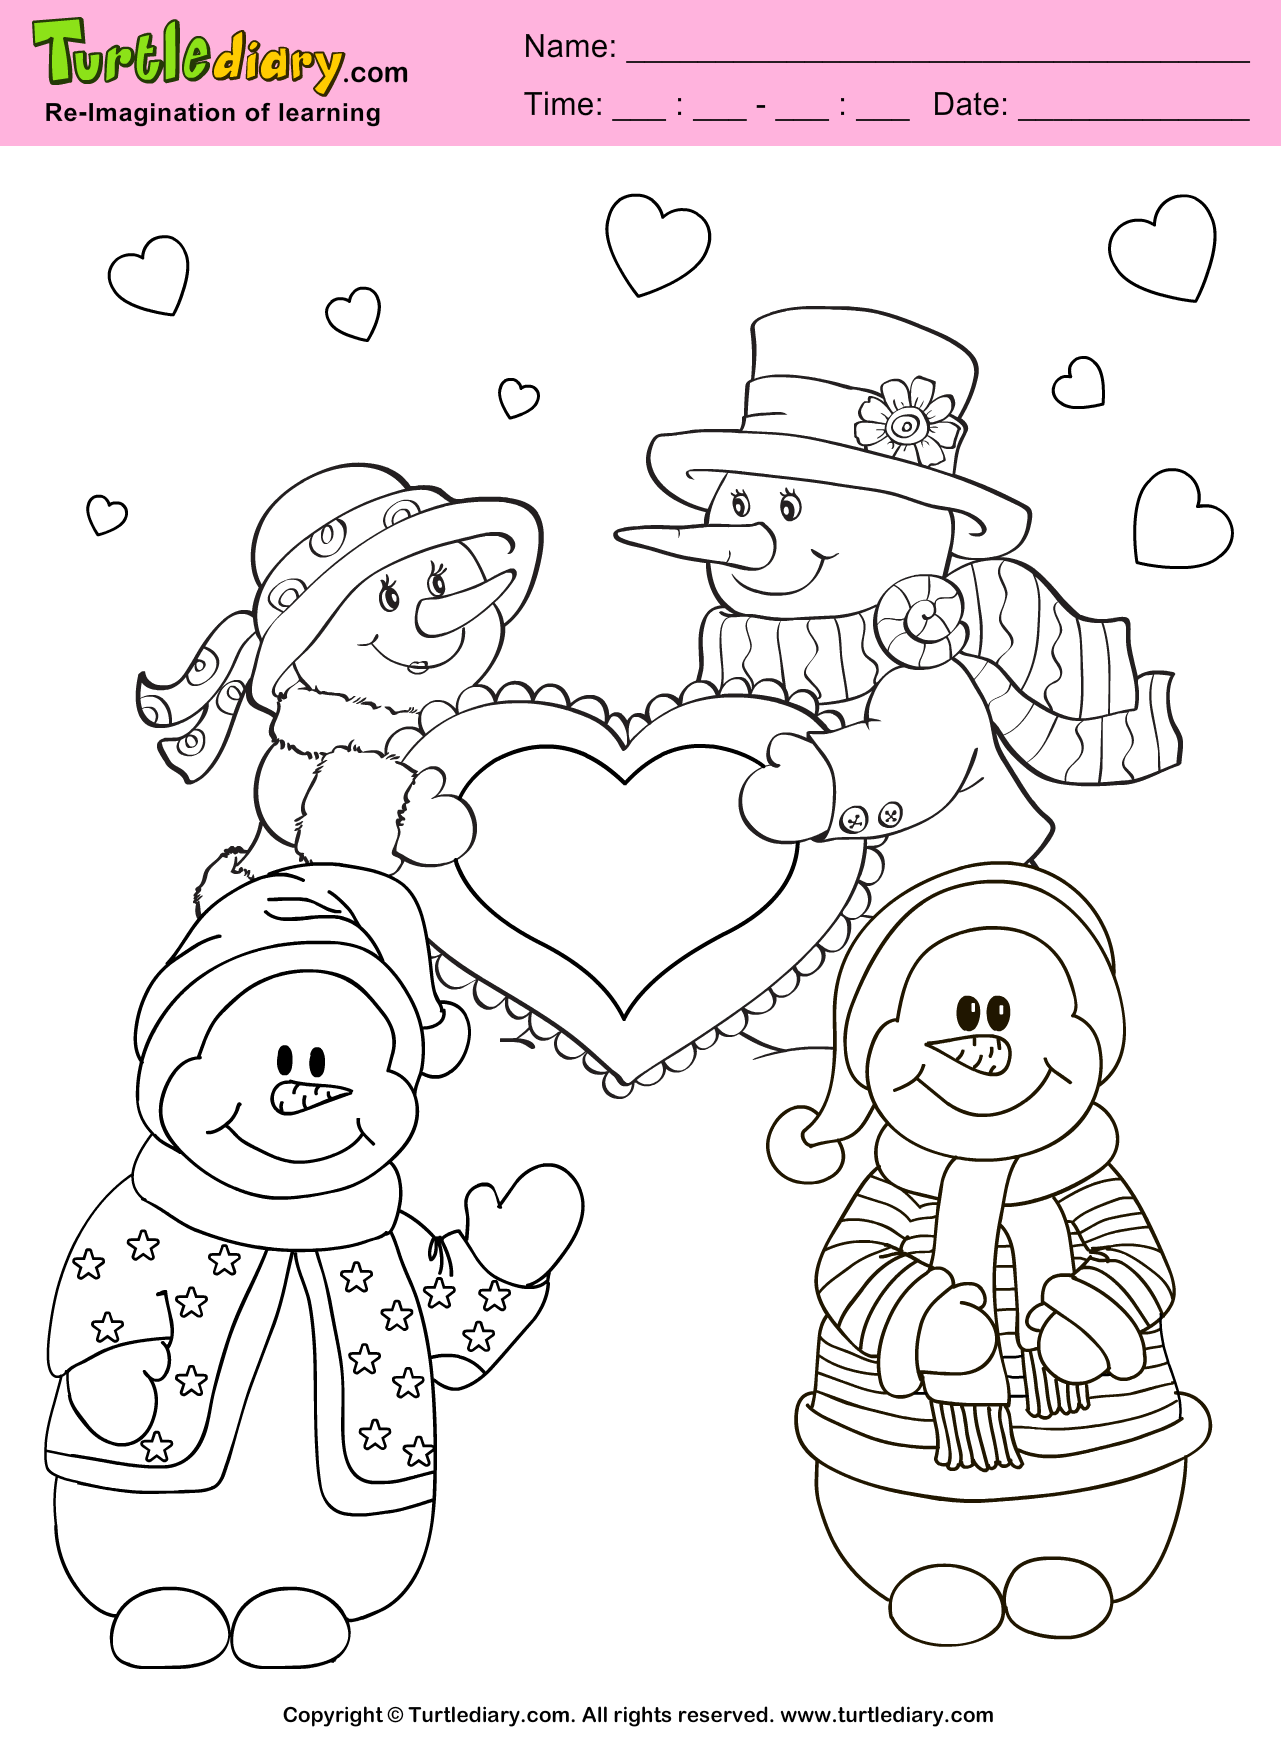 Snowman Valentine Day Coloring Sheet